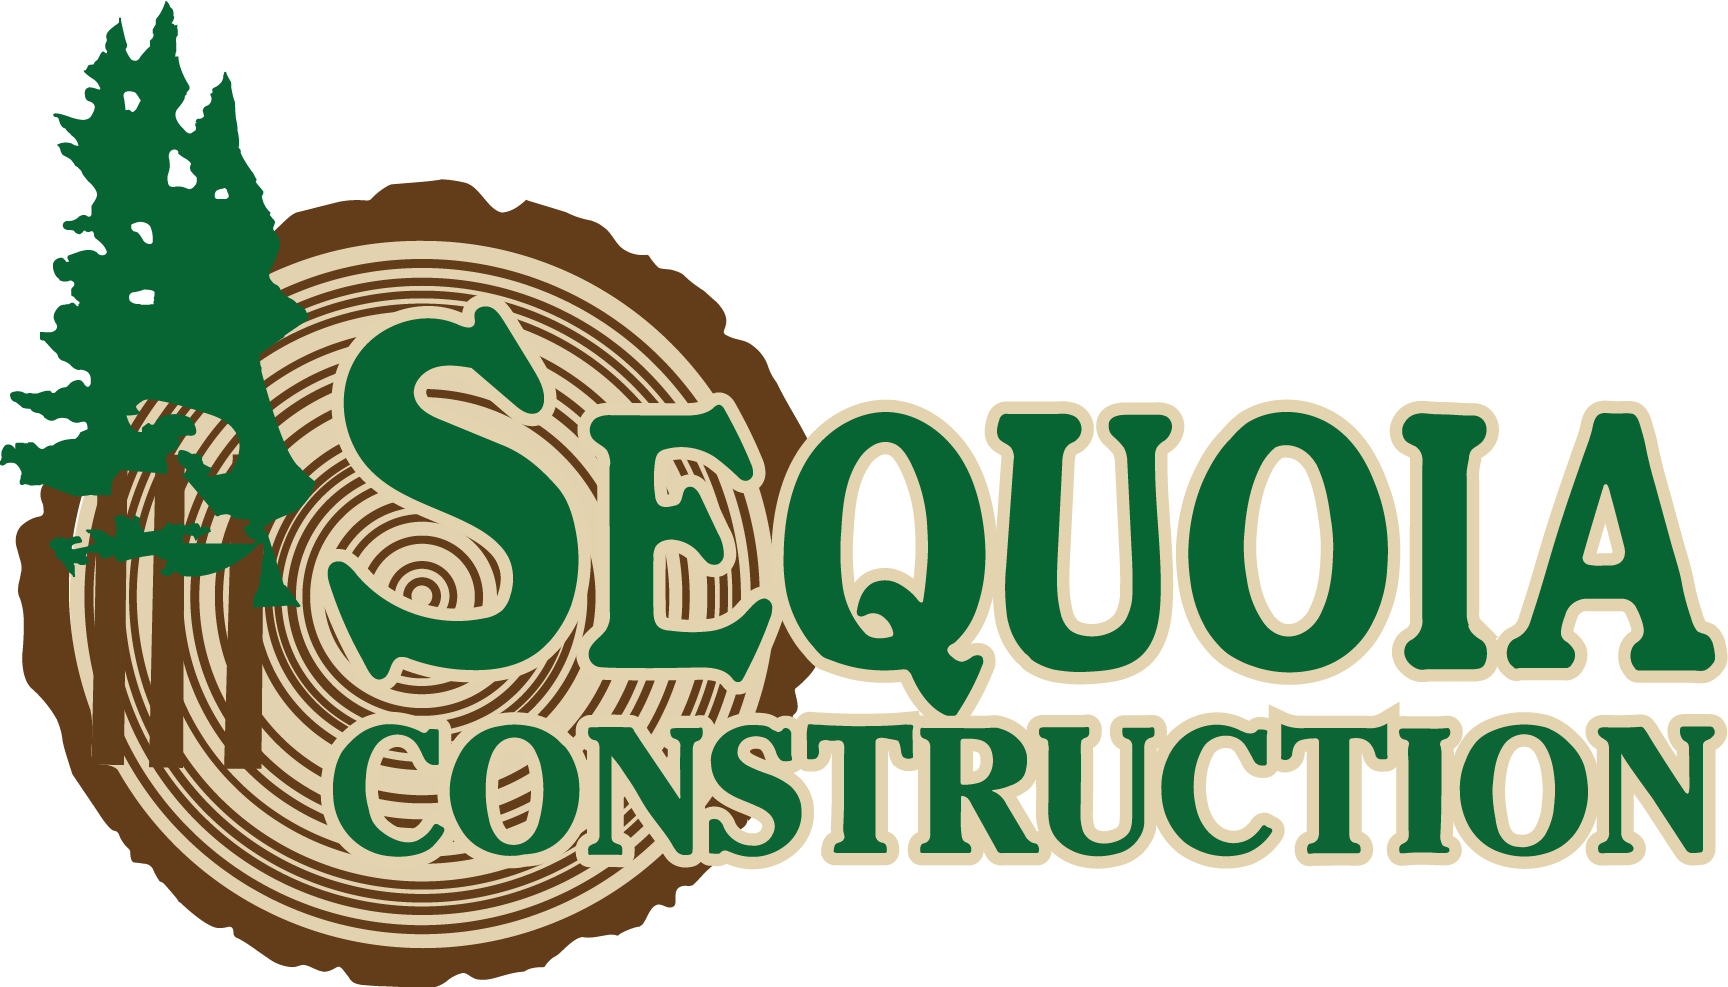 Sequoia Construction